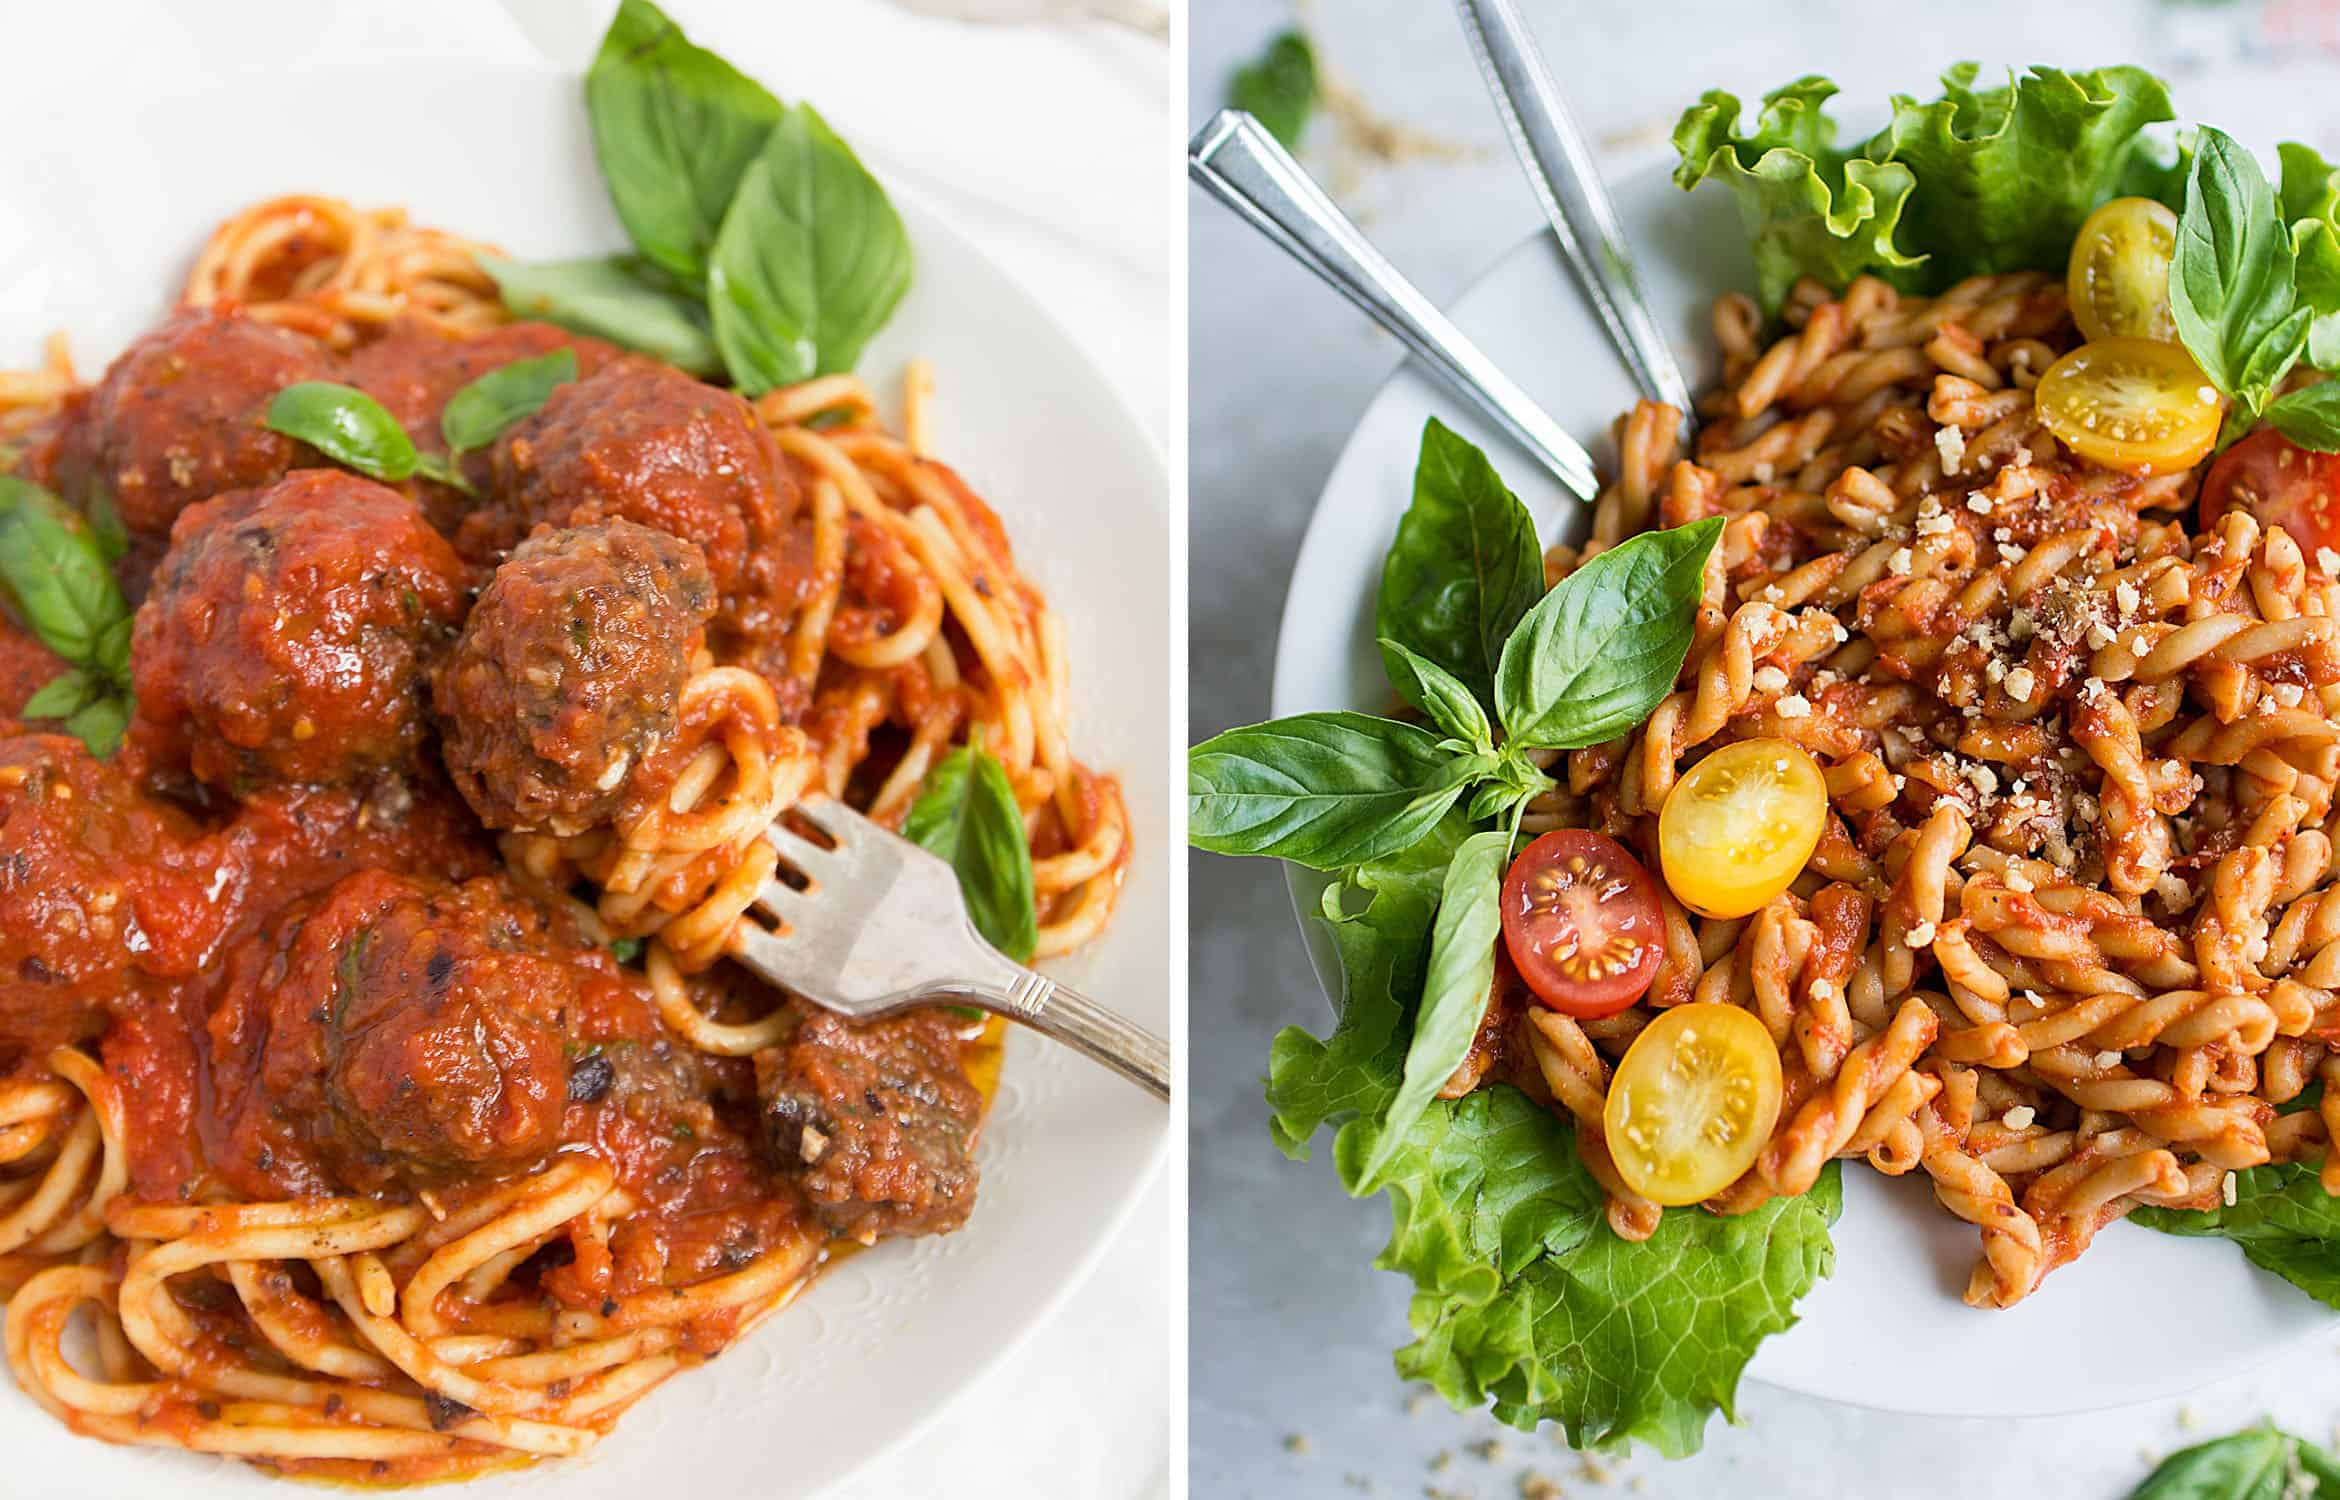 Spaghetti with vegan meatballs in tomato sauce on a white plate by The Clever Meal and Pepper pasta sauce with basil leaves by Lauren Caris Cooks